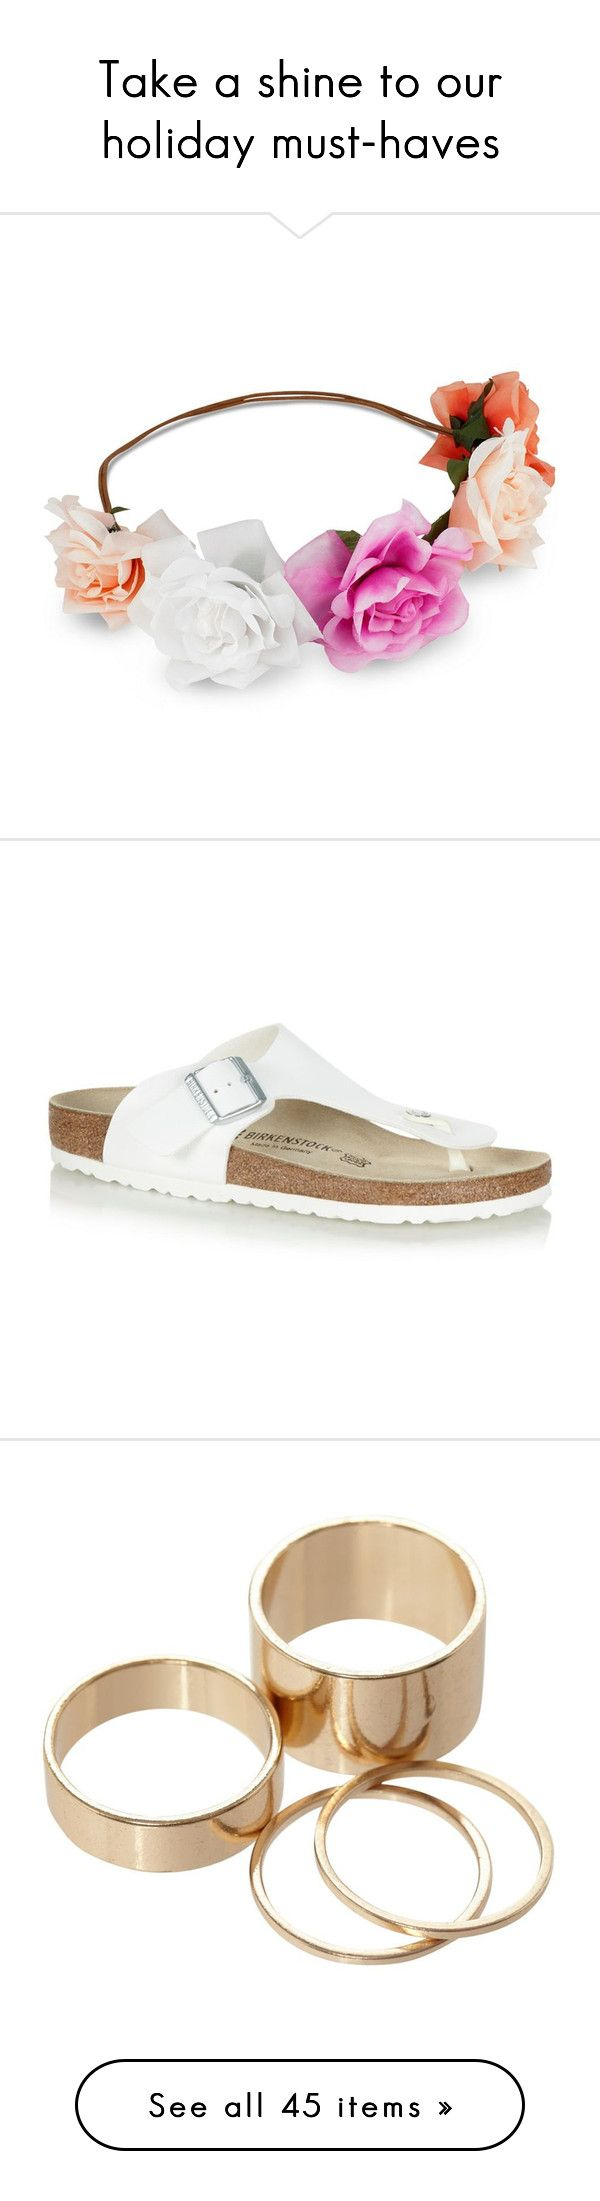 Black sandals debenhams -  Take A Shine To Our Holiday Must Haves By Debenhams Liked On